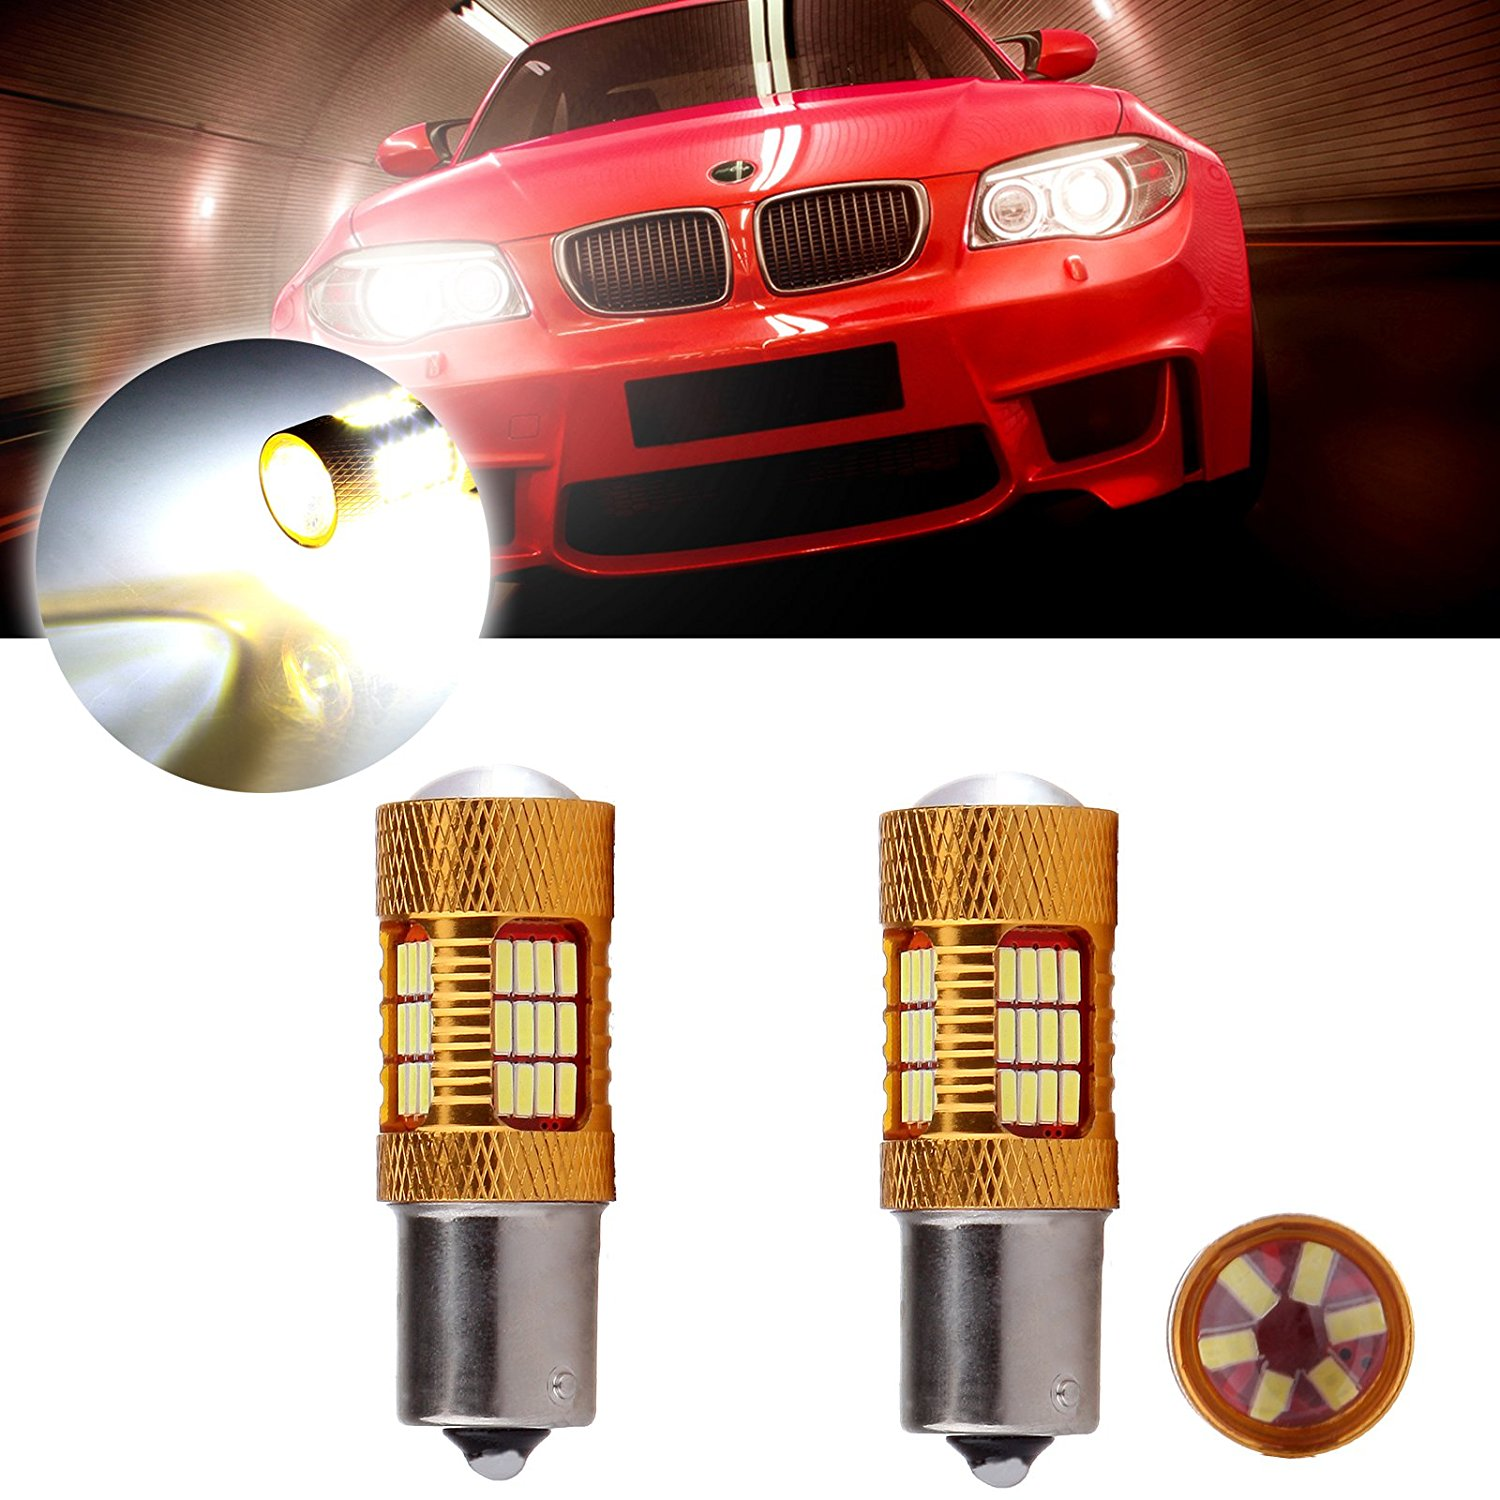 CCIYU 2 Pack Xenon White 6000K 60W 6000LM 1156 BA15S Cree LED 54 4014 SMD Backup Reverse Light